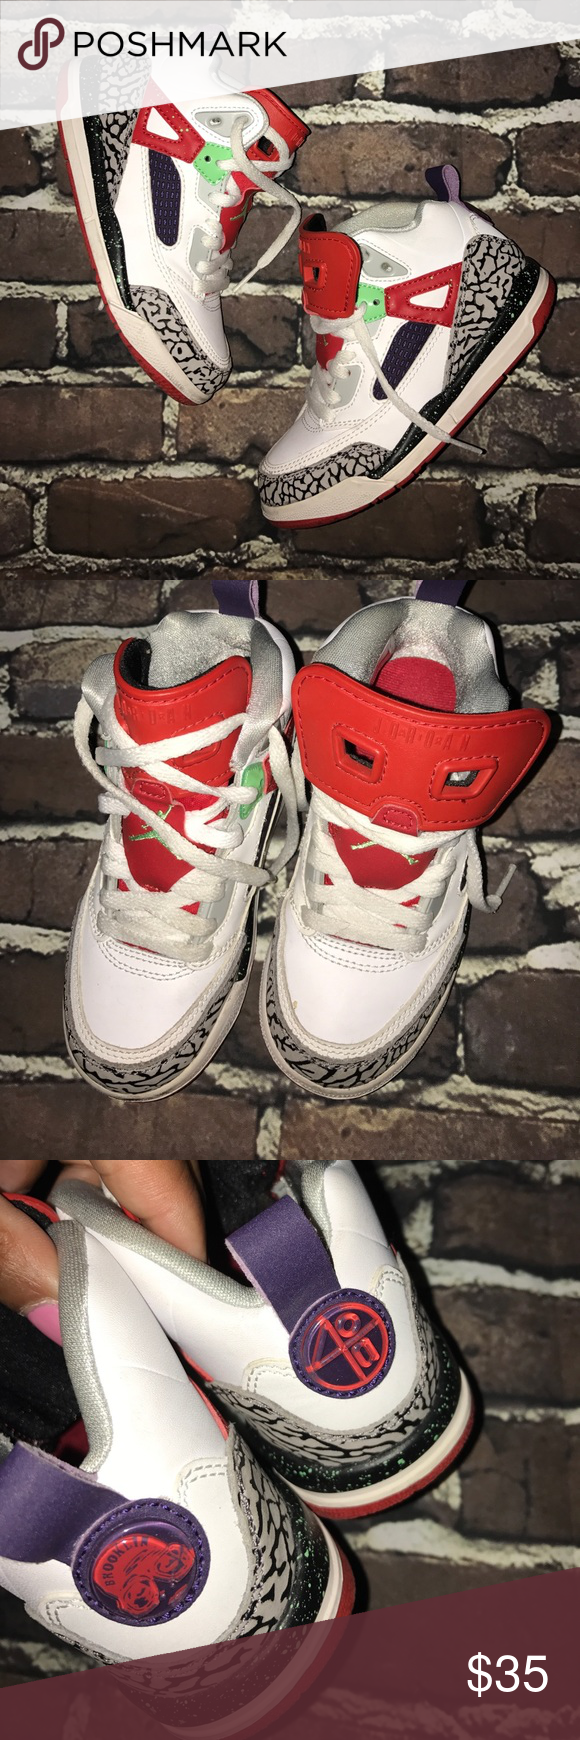 big sale 0175e 23518 NIKE~AIR JORDAN SPIKE LEE 40~Brooklyn Retros~11C Moderate use, no box.  White with red and elephant print grey as primary colors, purple and bright  green ...